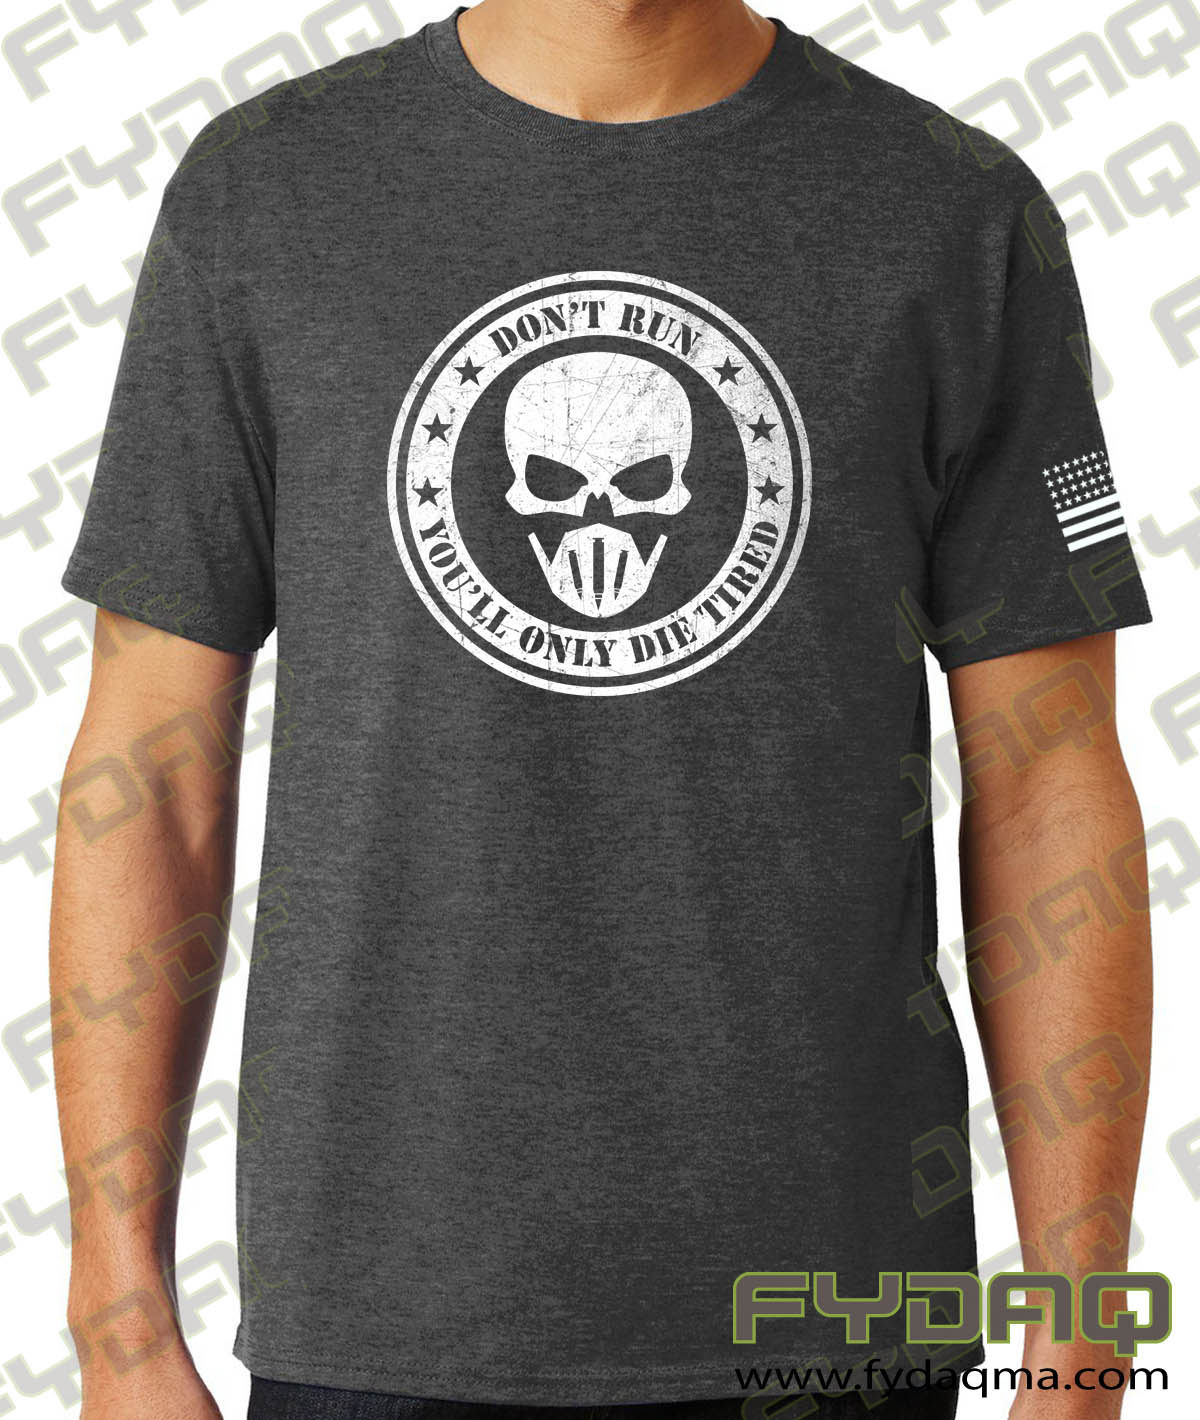 Don't-run-you'll-only-die-tired-charcoal-heather-grey-tshirt-fydaq